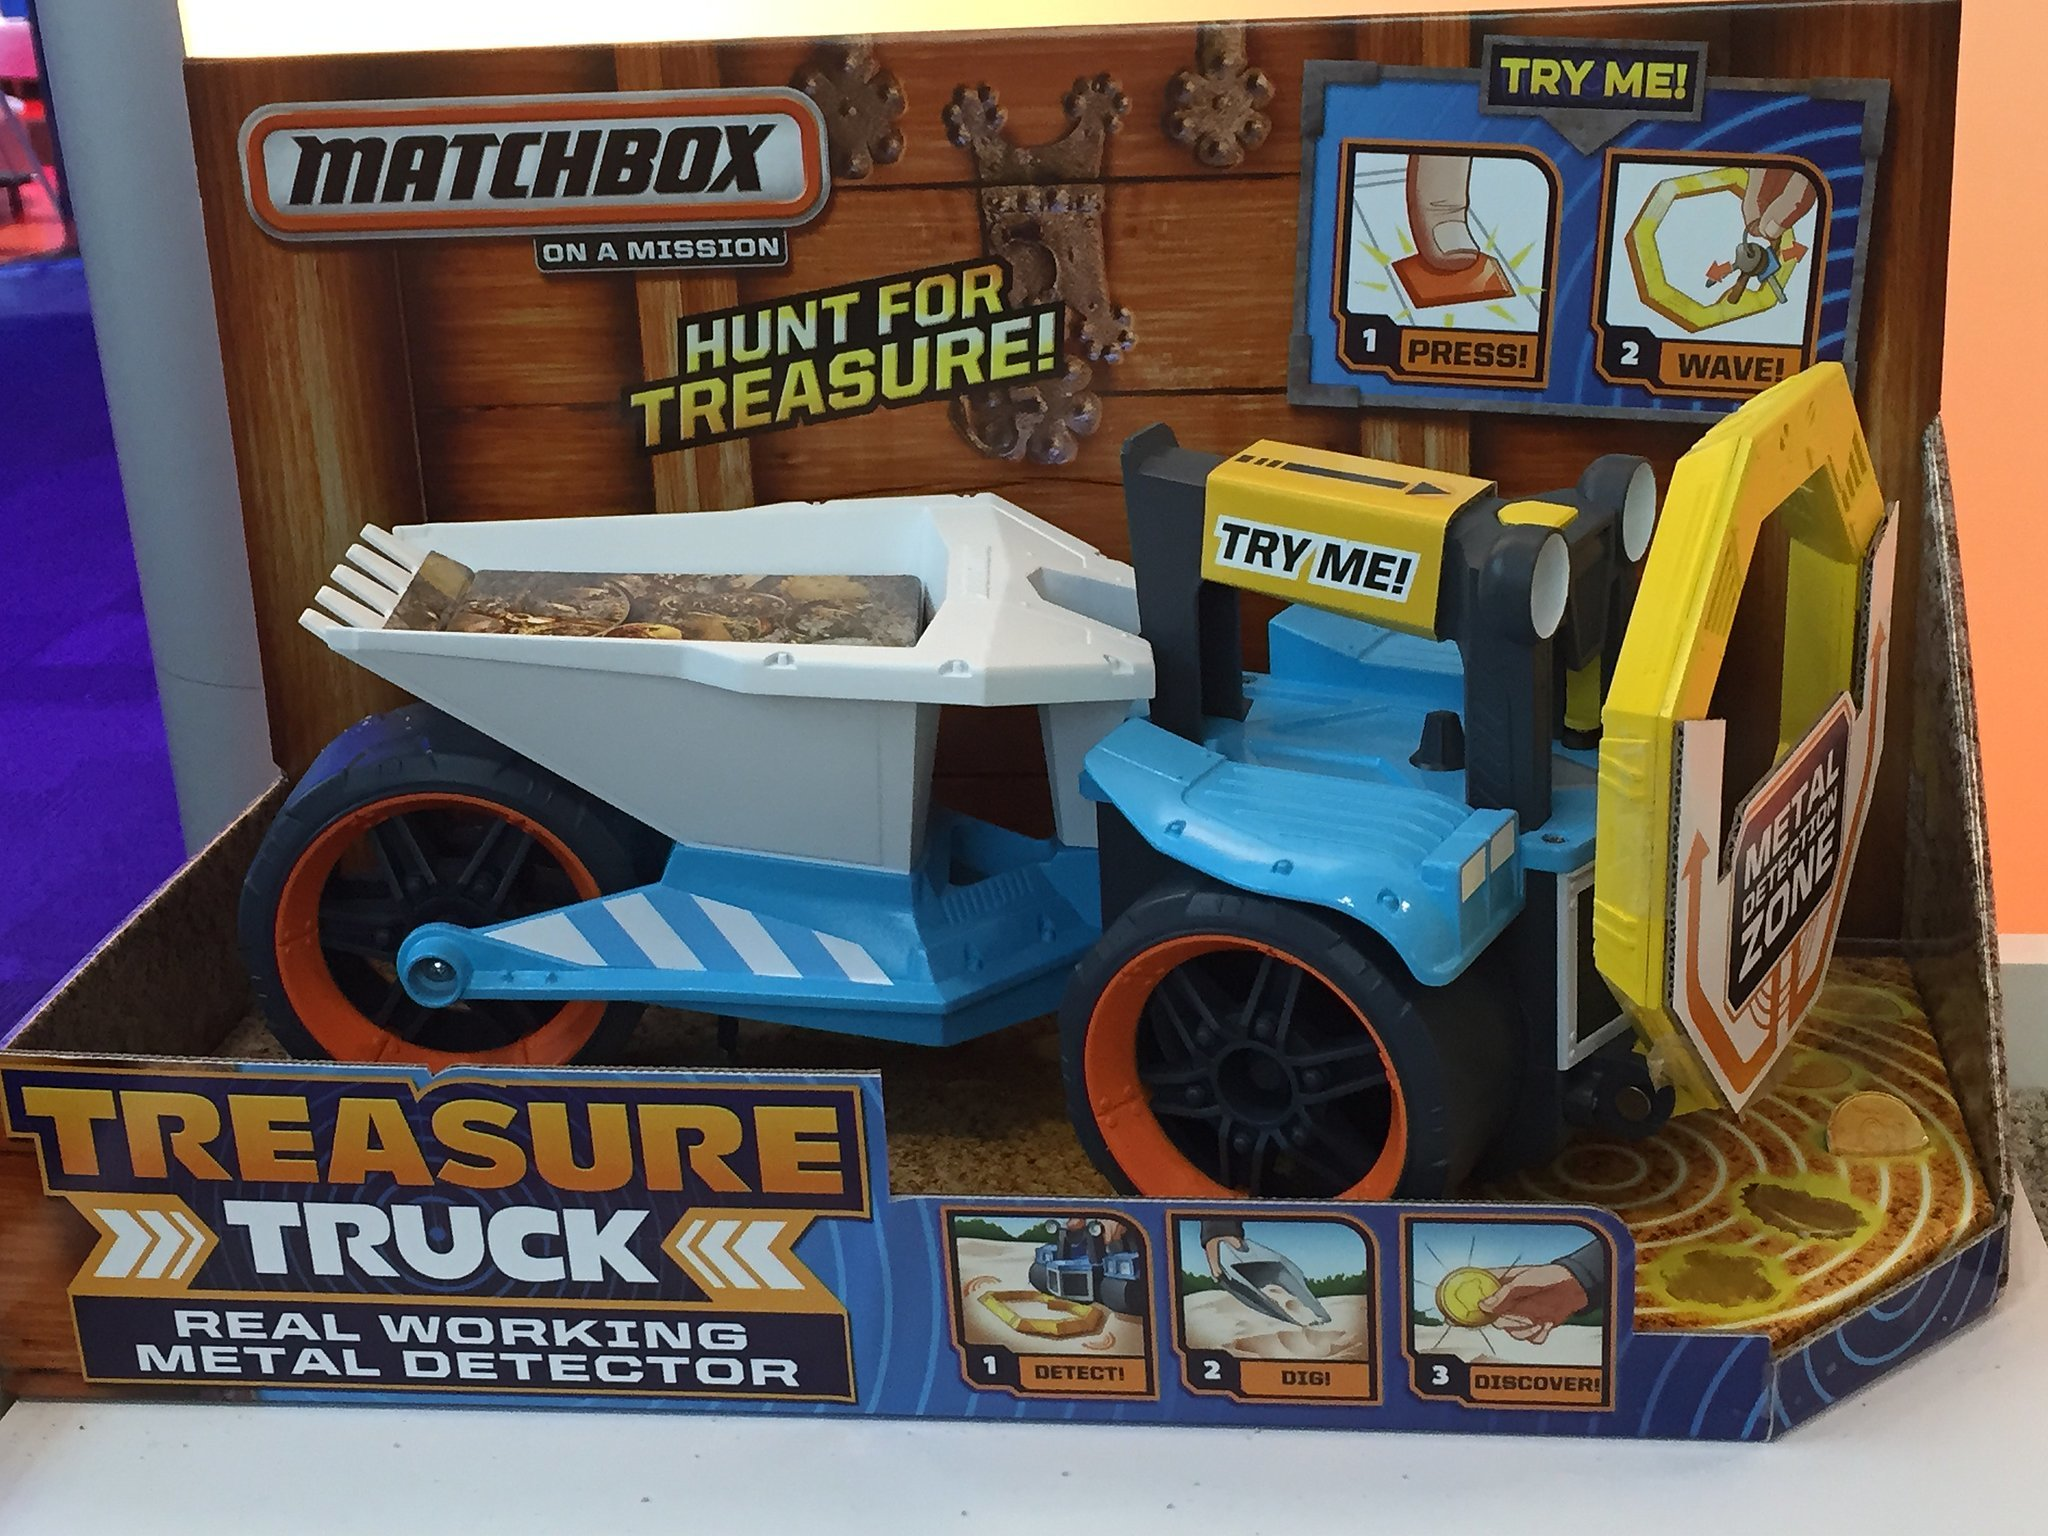 Matchbox Treasure Truck | Here's Your Peek Into 200+ Toys That Will ...: www.popsugar.com/moms/photo-gallery/36873067/image/36879515...